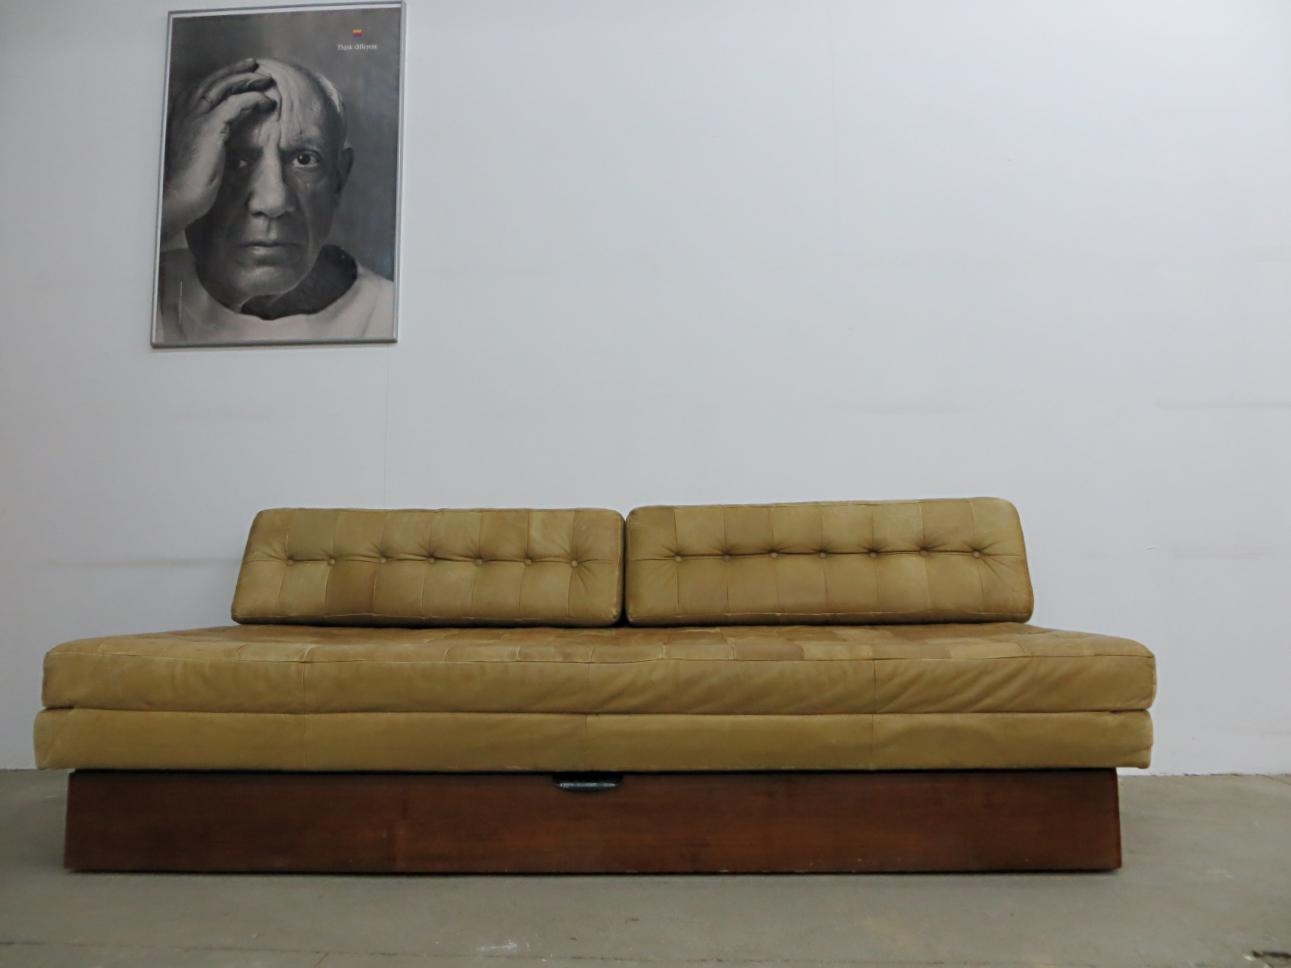 Vintage Leather Sofa Bed For Sale At Pamono Intended For Vintage Leather Sofa Beds (Image 18 of 20)